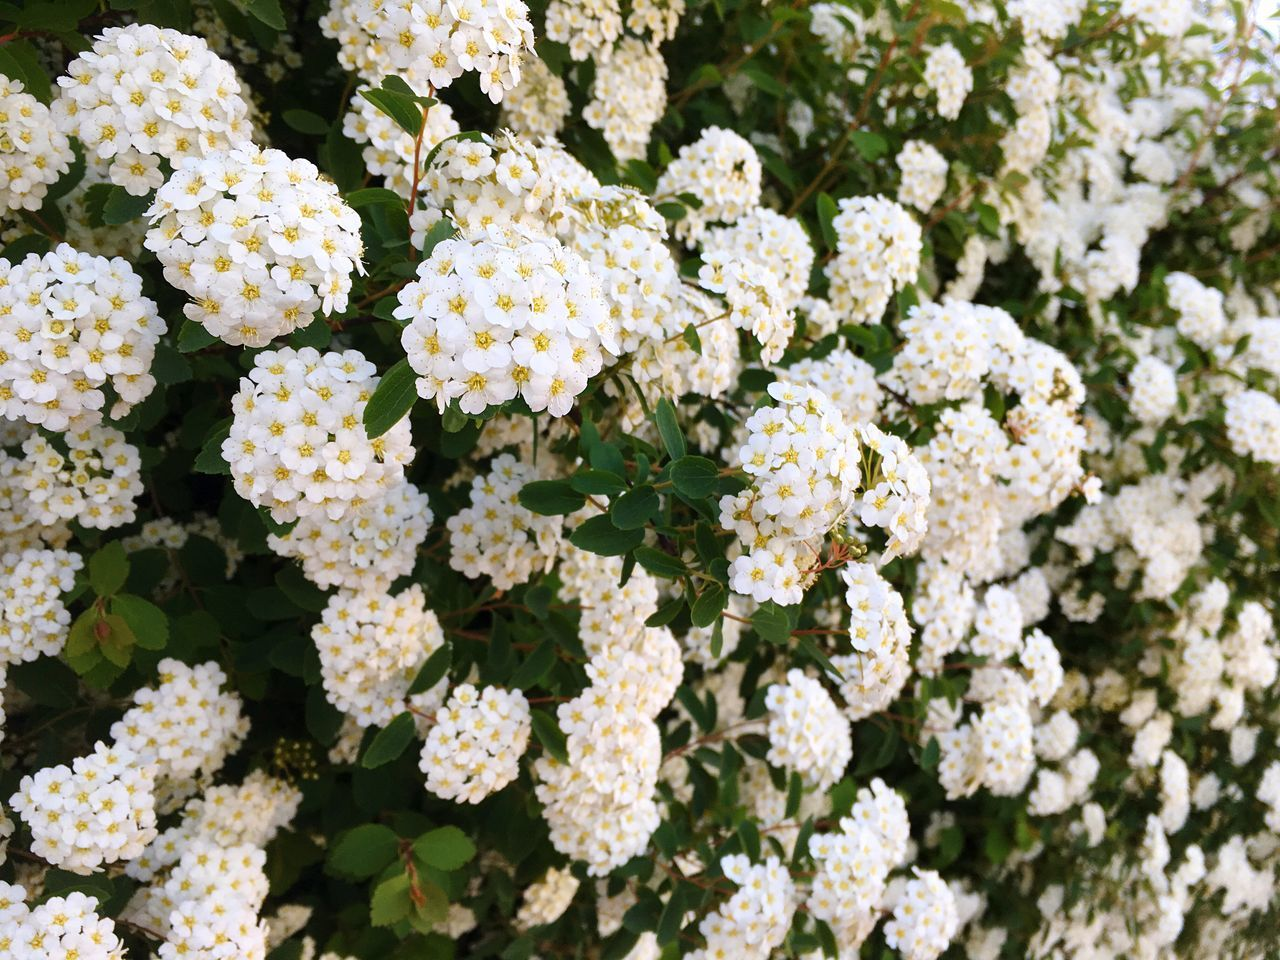 White flowers background Flower Growth Freshness Nature No People Outdoors Day Close-up Beauty In Nature Plant Backgrounds Fragility Flower Head Flowers Wallpaper Spring